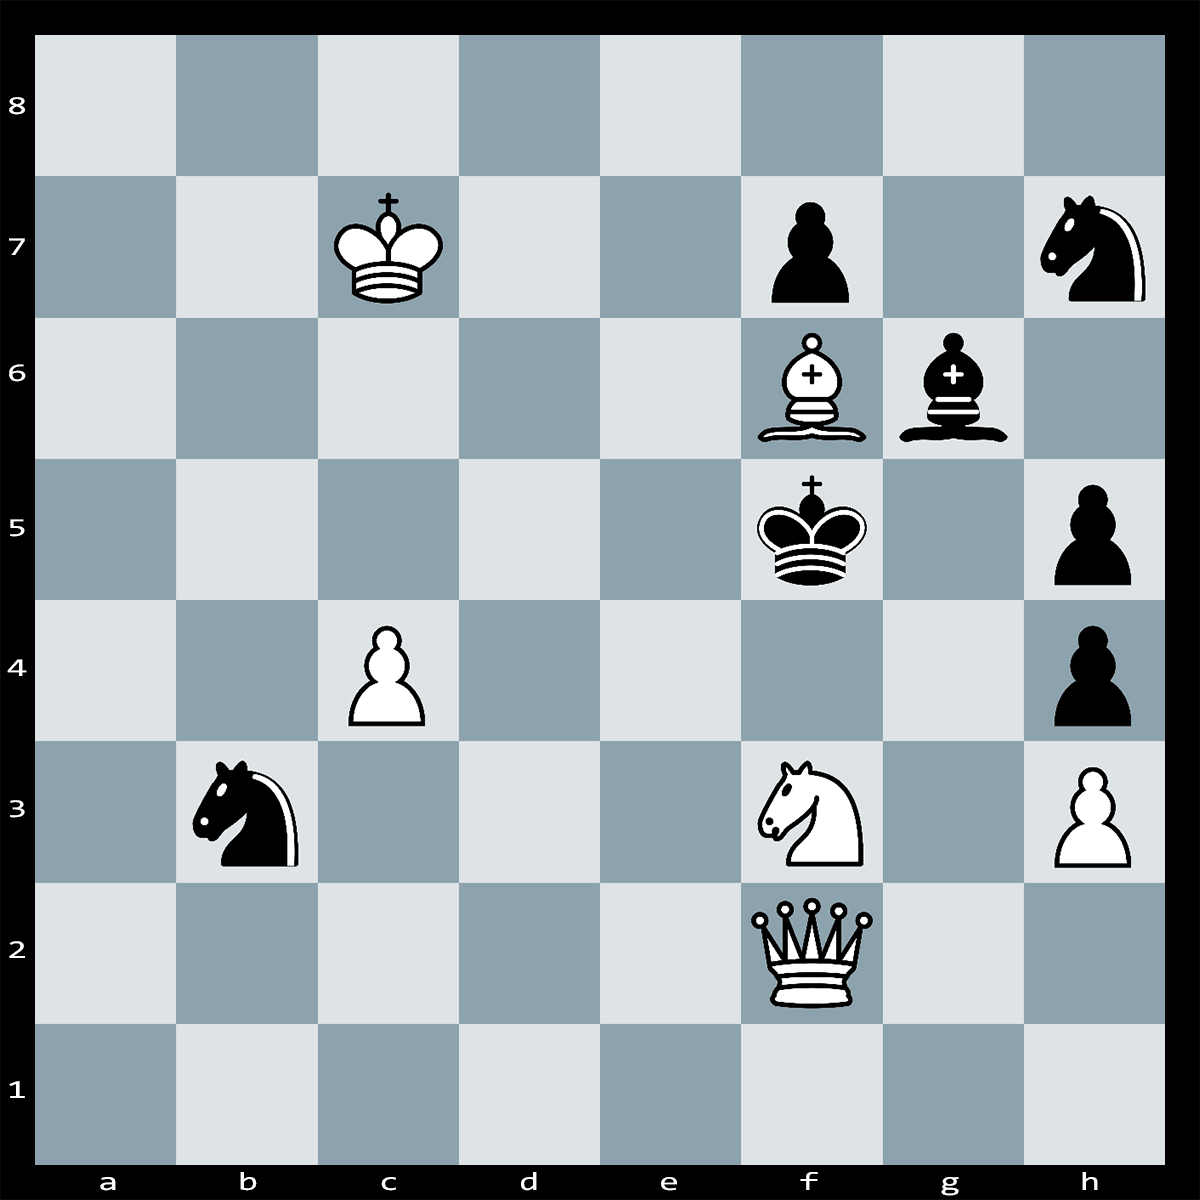 Chess Puzzle #303 | Can You Find the Winning Move to This Puzzle? Checkmate in one move, White to Play.